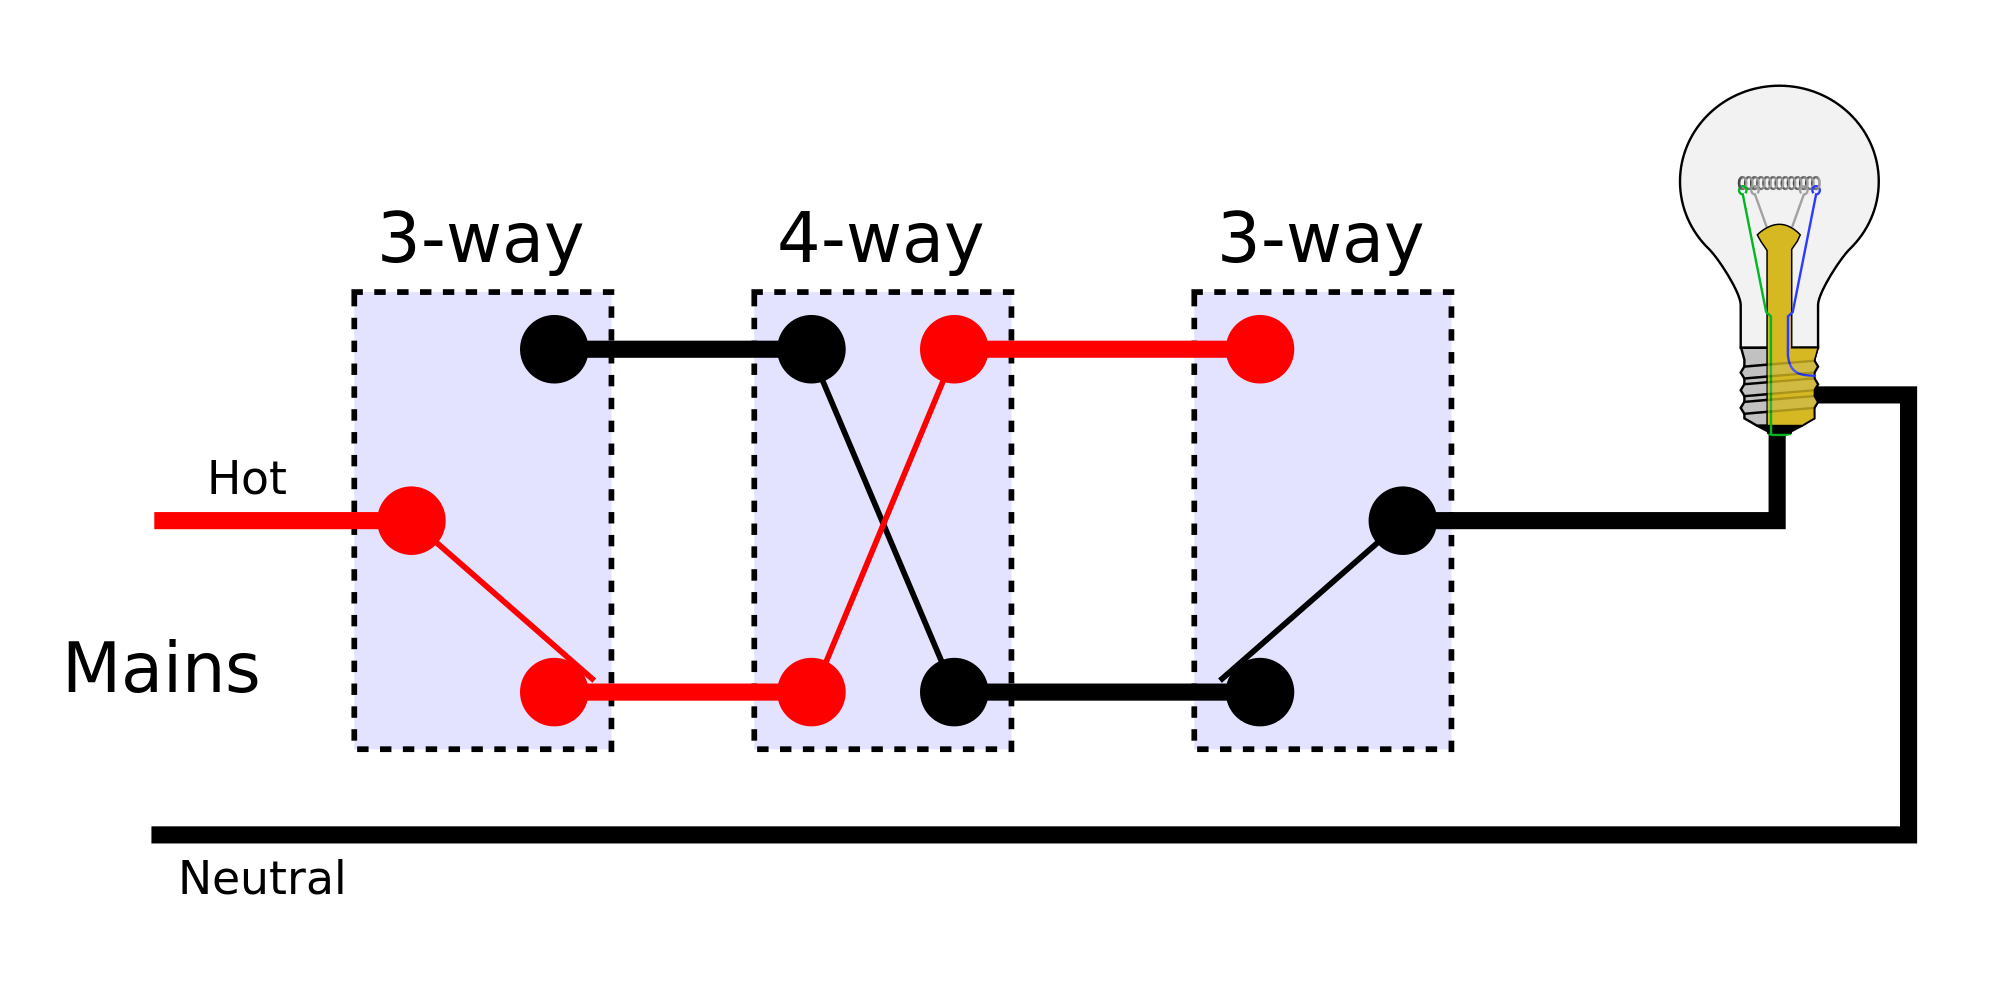 Switch drawing light. File way switches position